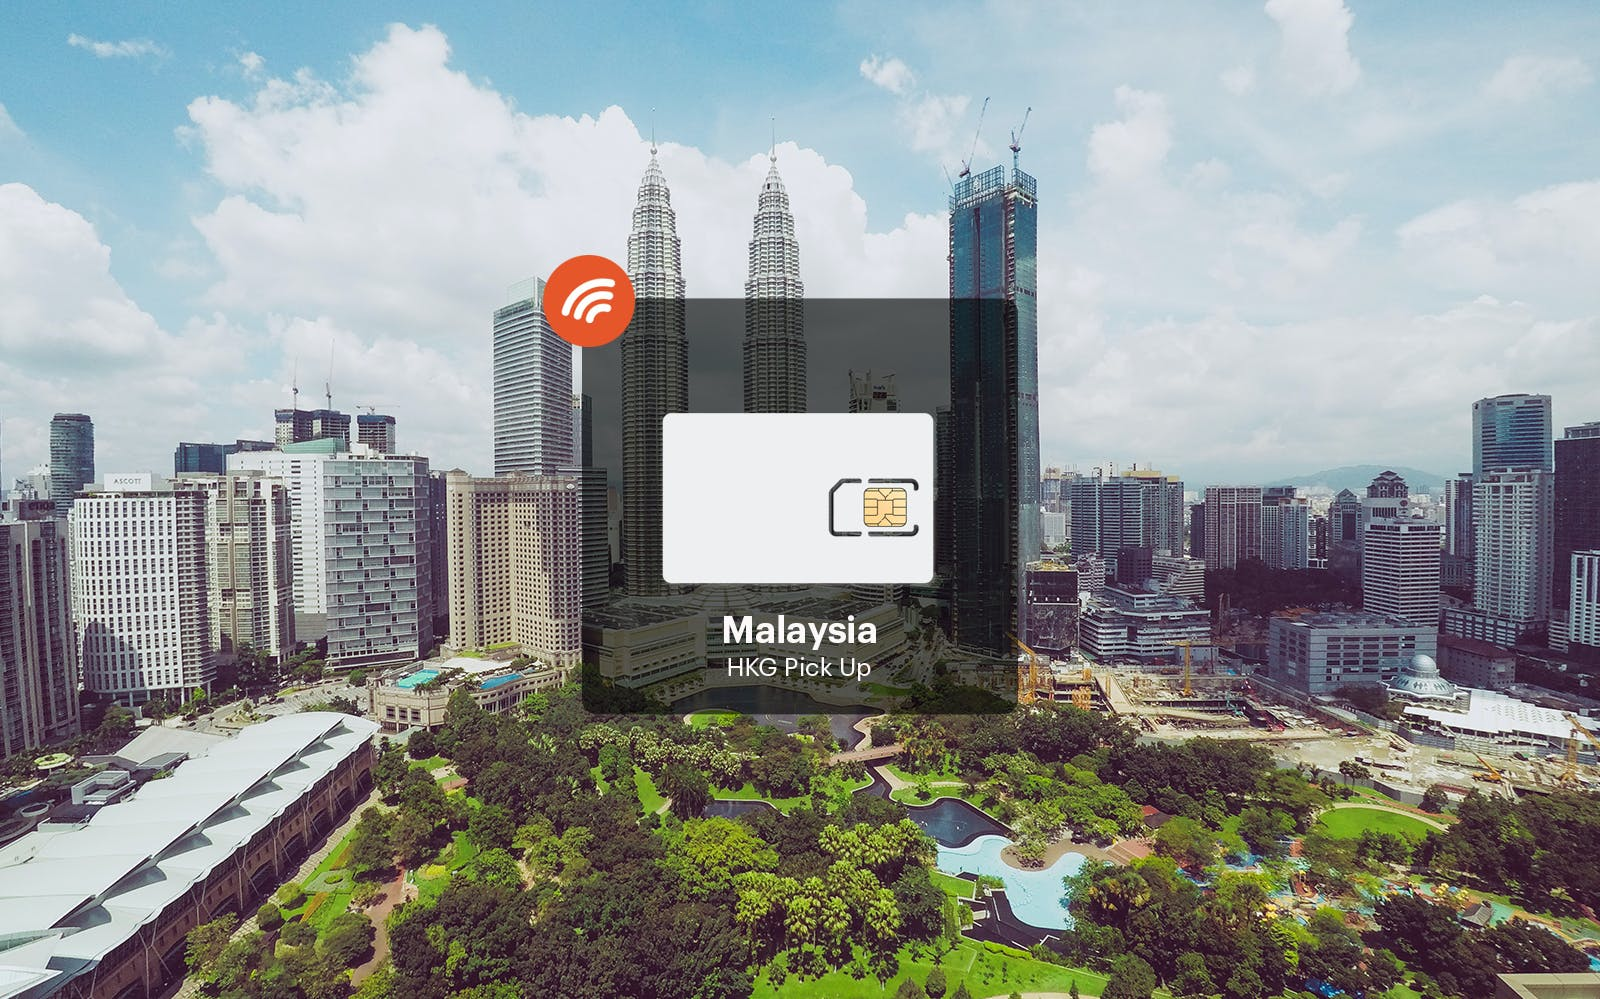 malaysia 4g unlimited data pick up from hong kong-1